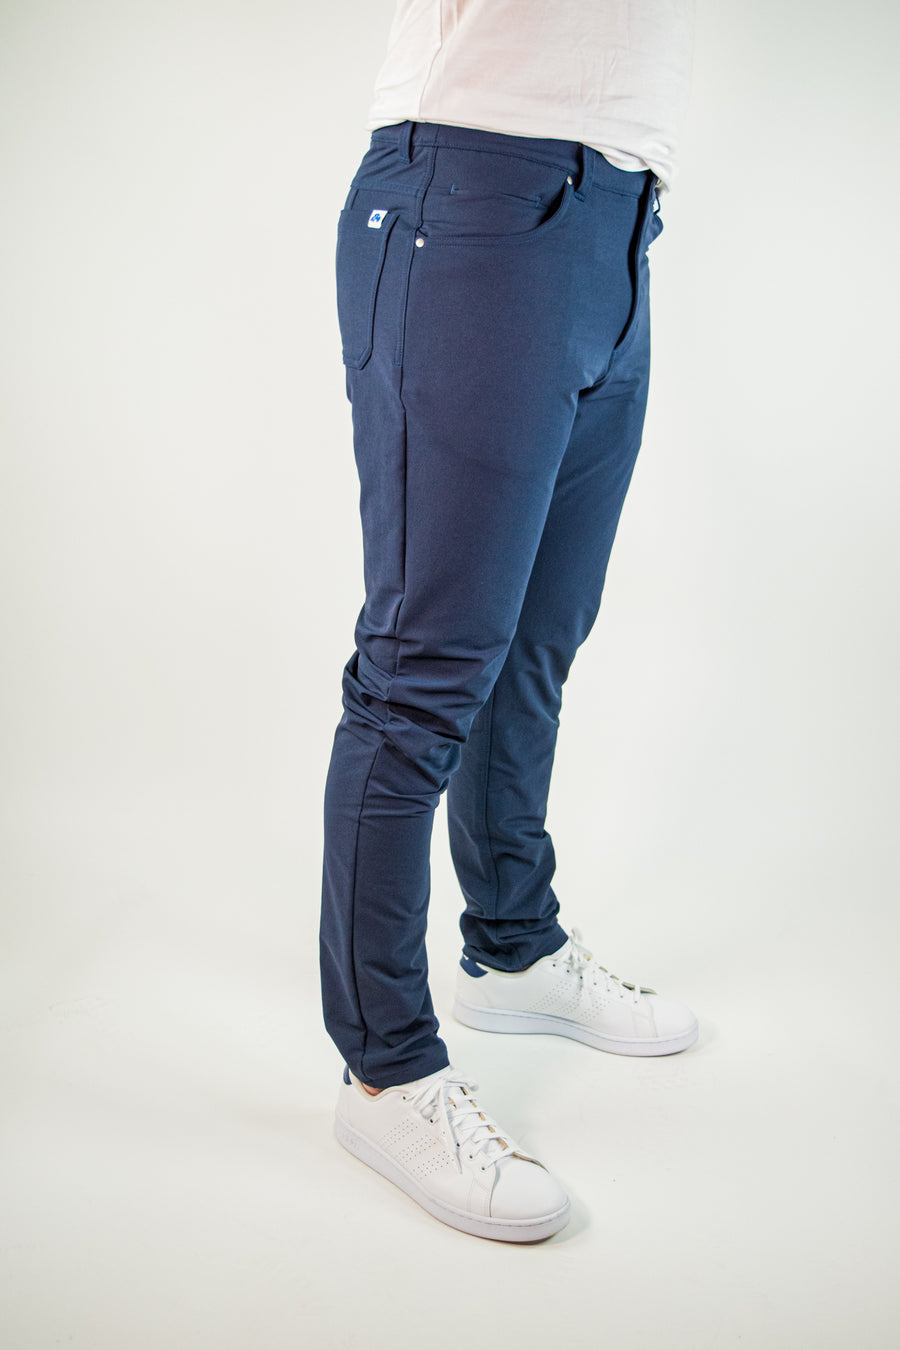 Lodo Tall Pant // Navy